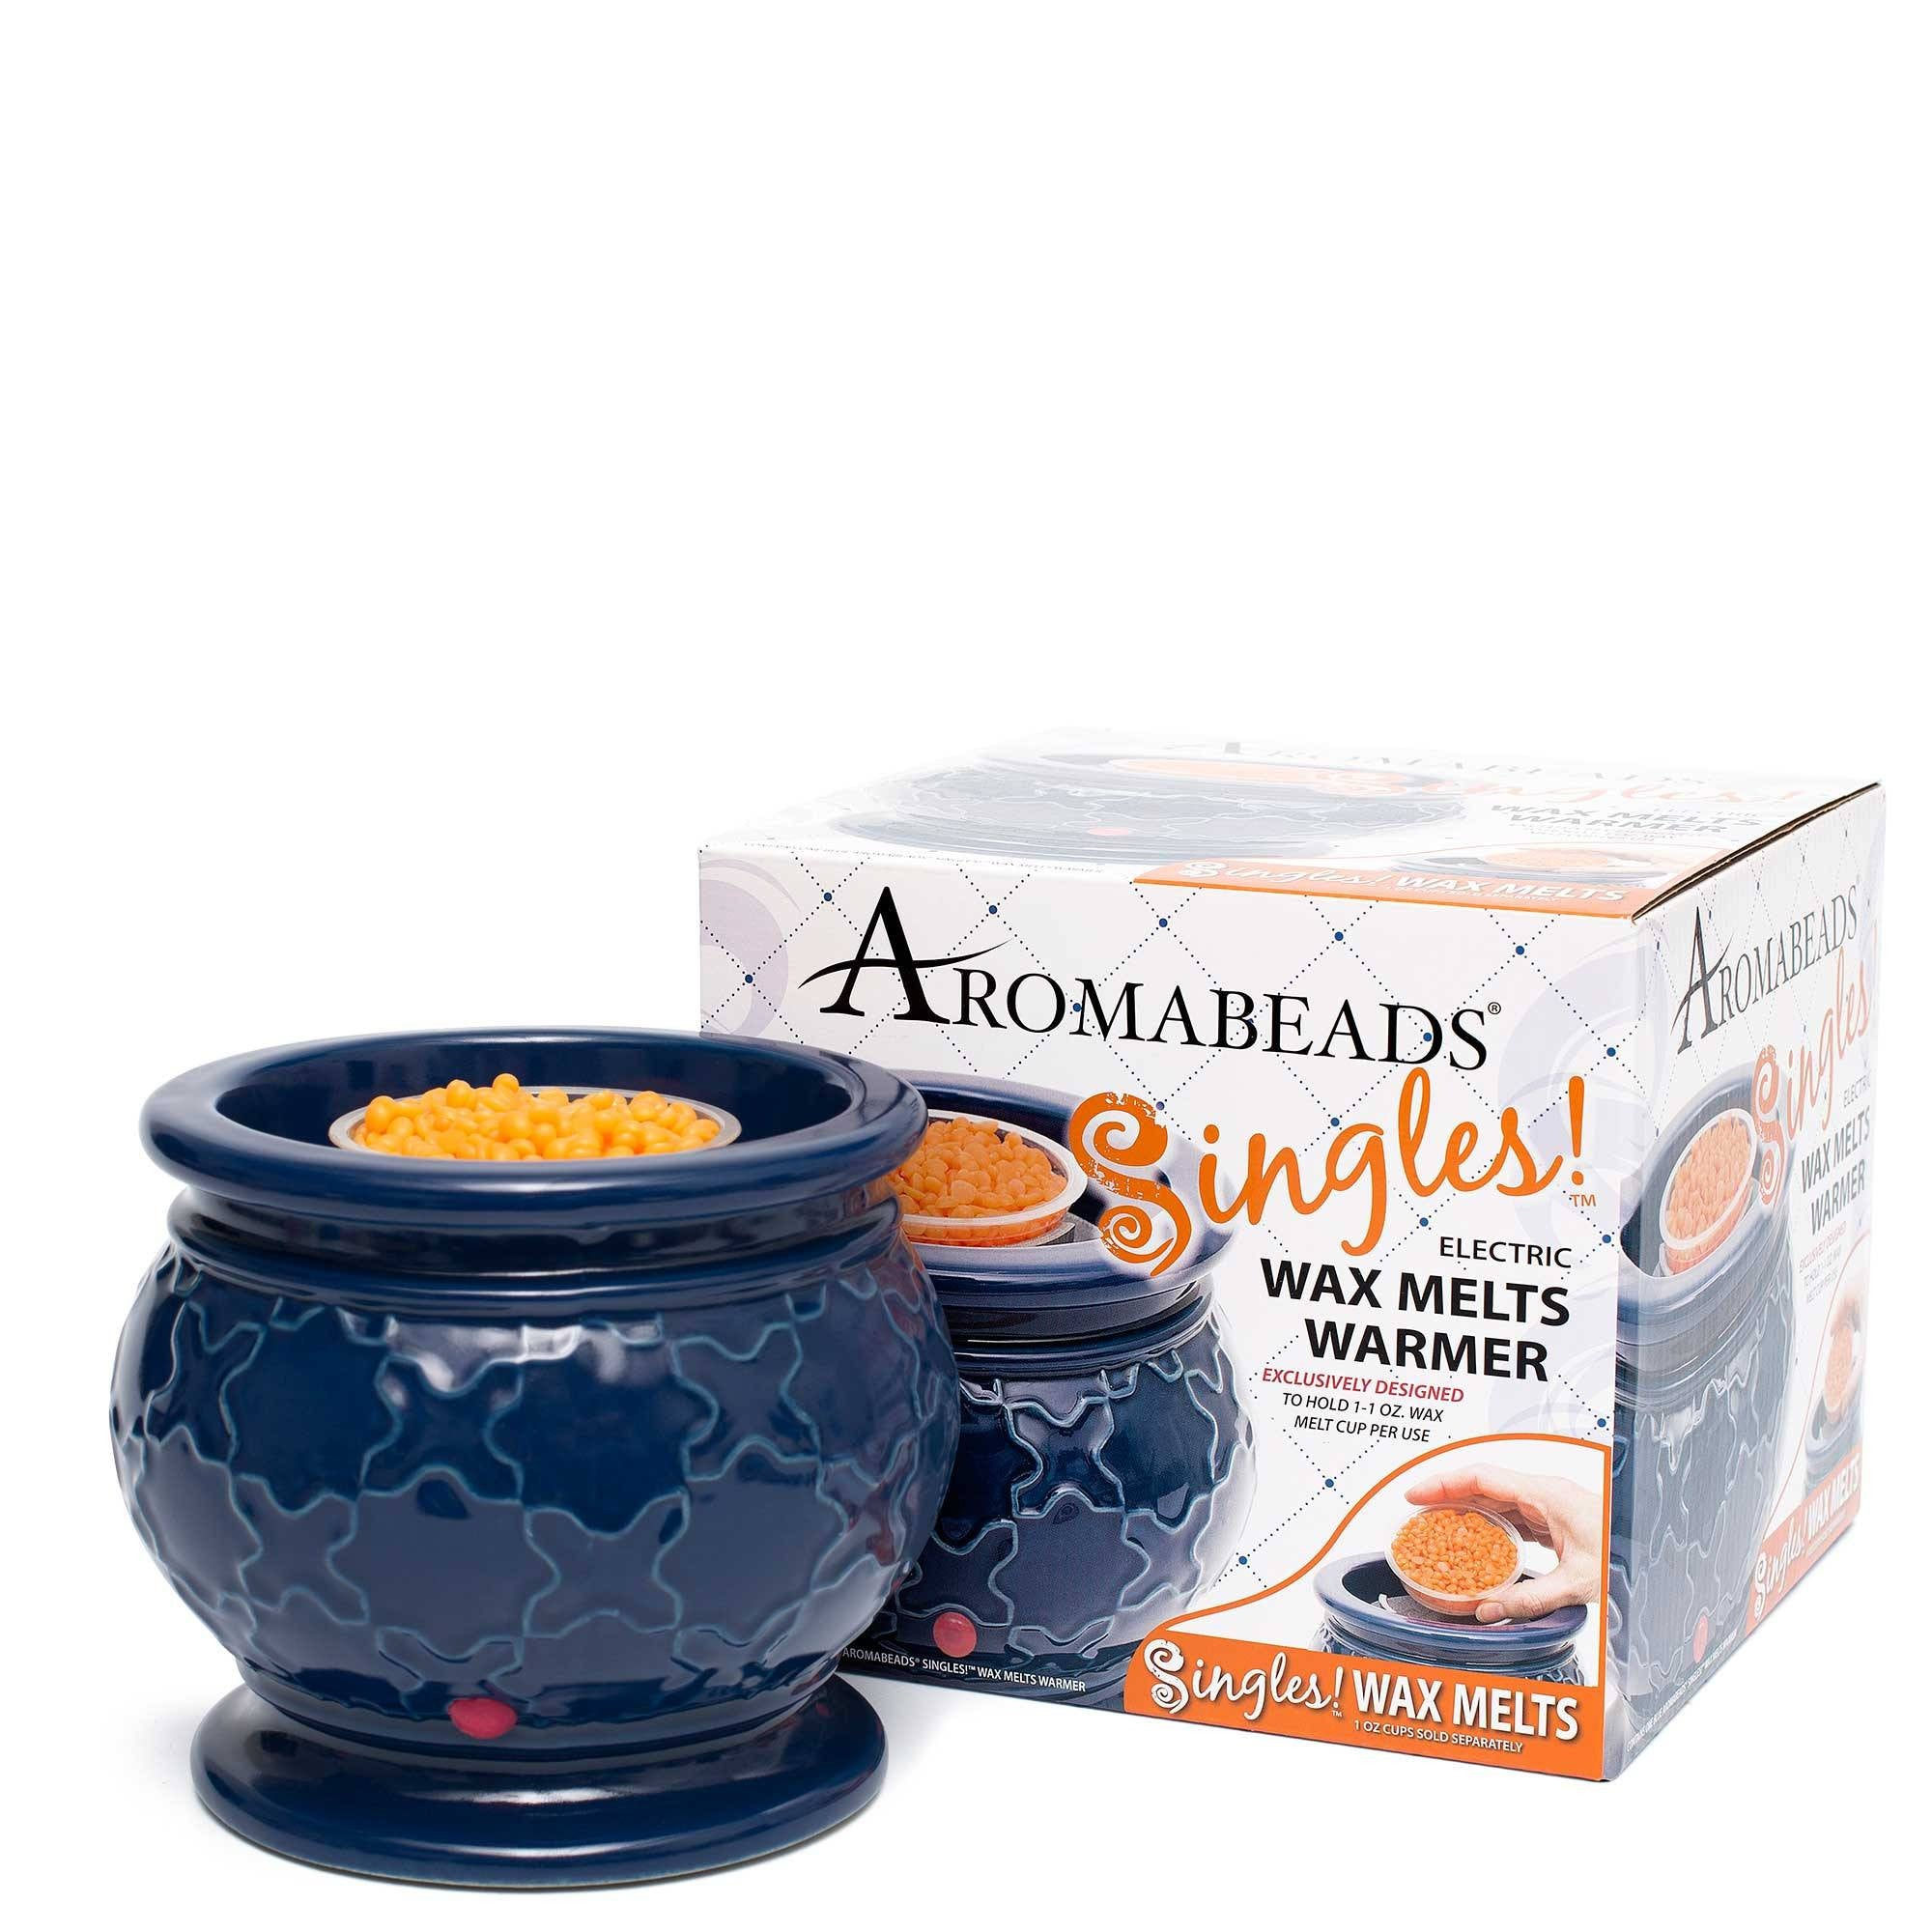 Aromabeads Singles Eucalyptus Mint Scented Wax Melts - Candlemart.com - 3